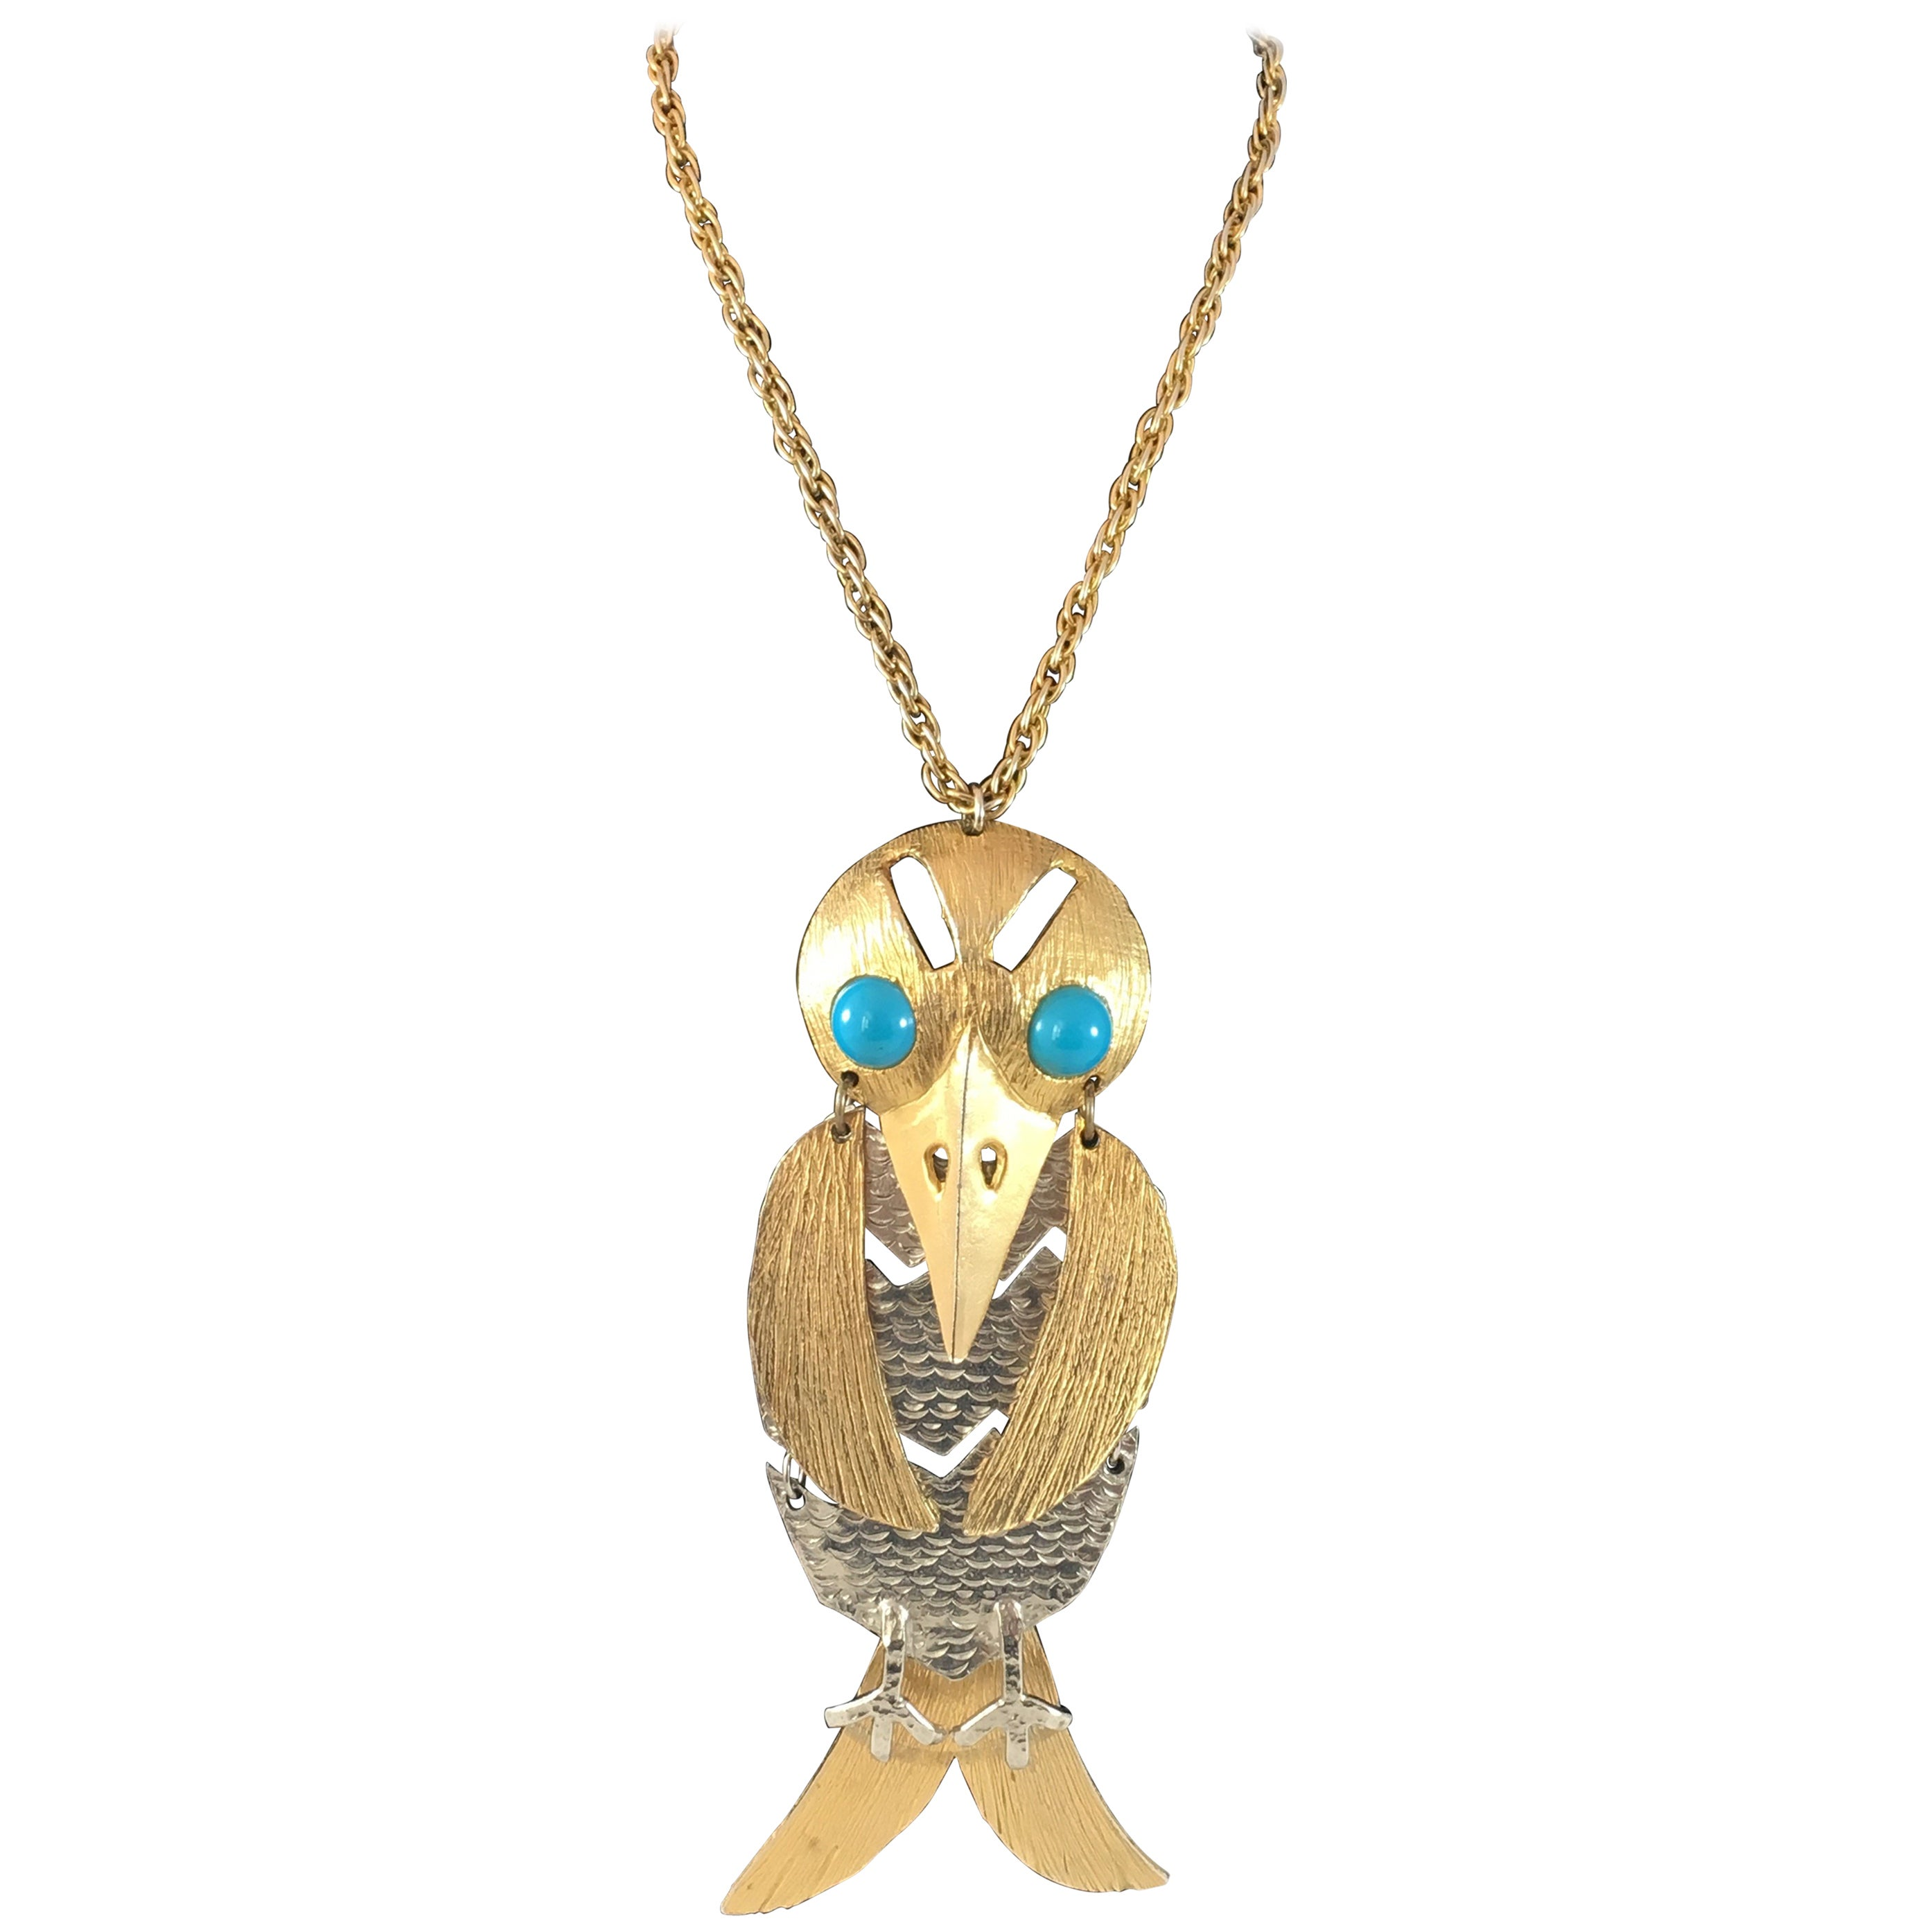 hello pendant necklaces candy s buckingham img online birdie bird products original collections necklace